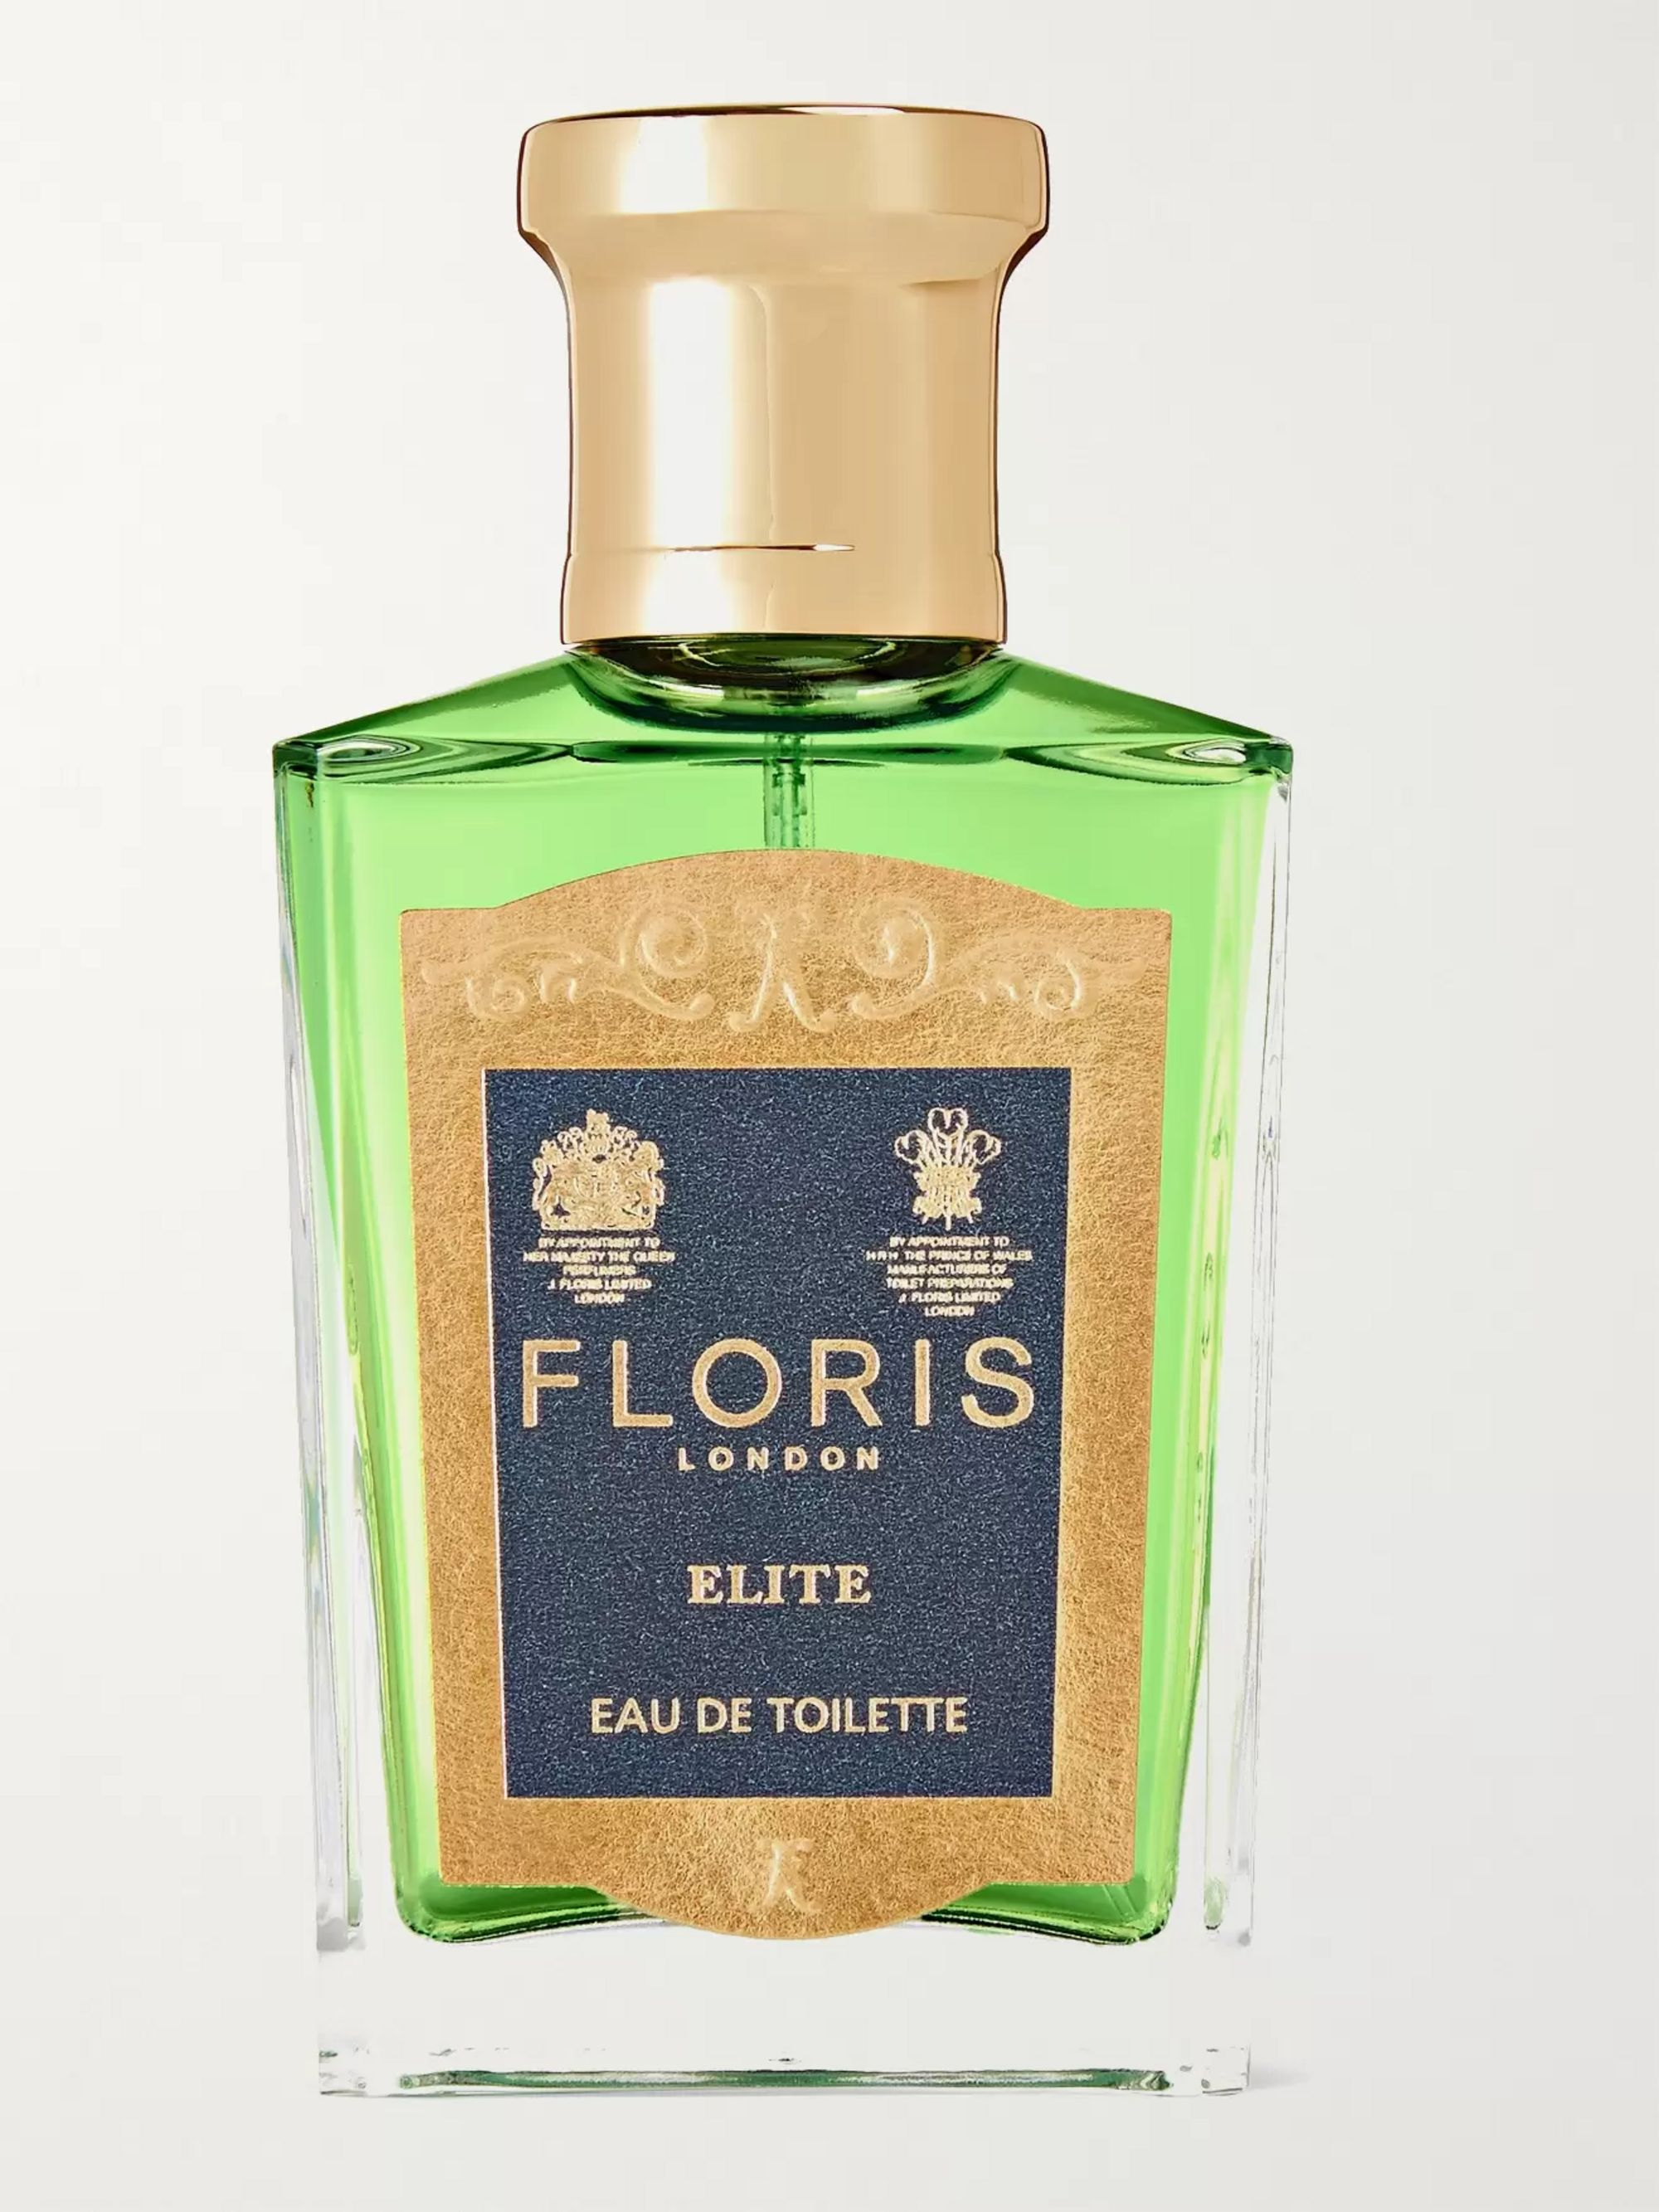 Floris London Elite Eau de Toilette - Cedar Leaf, Patchouli, 50ml